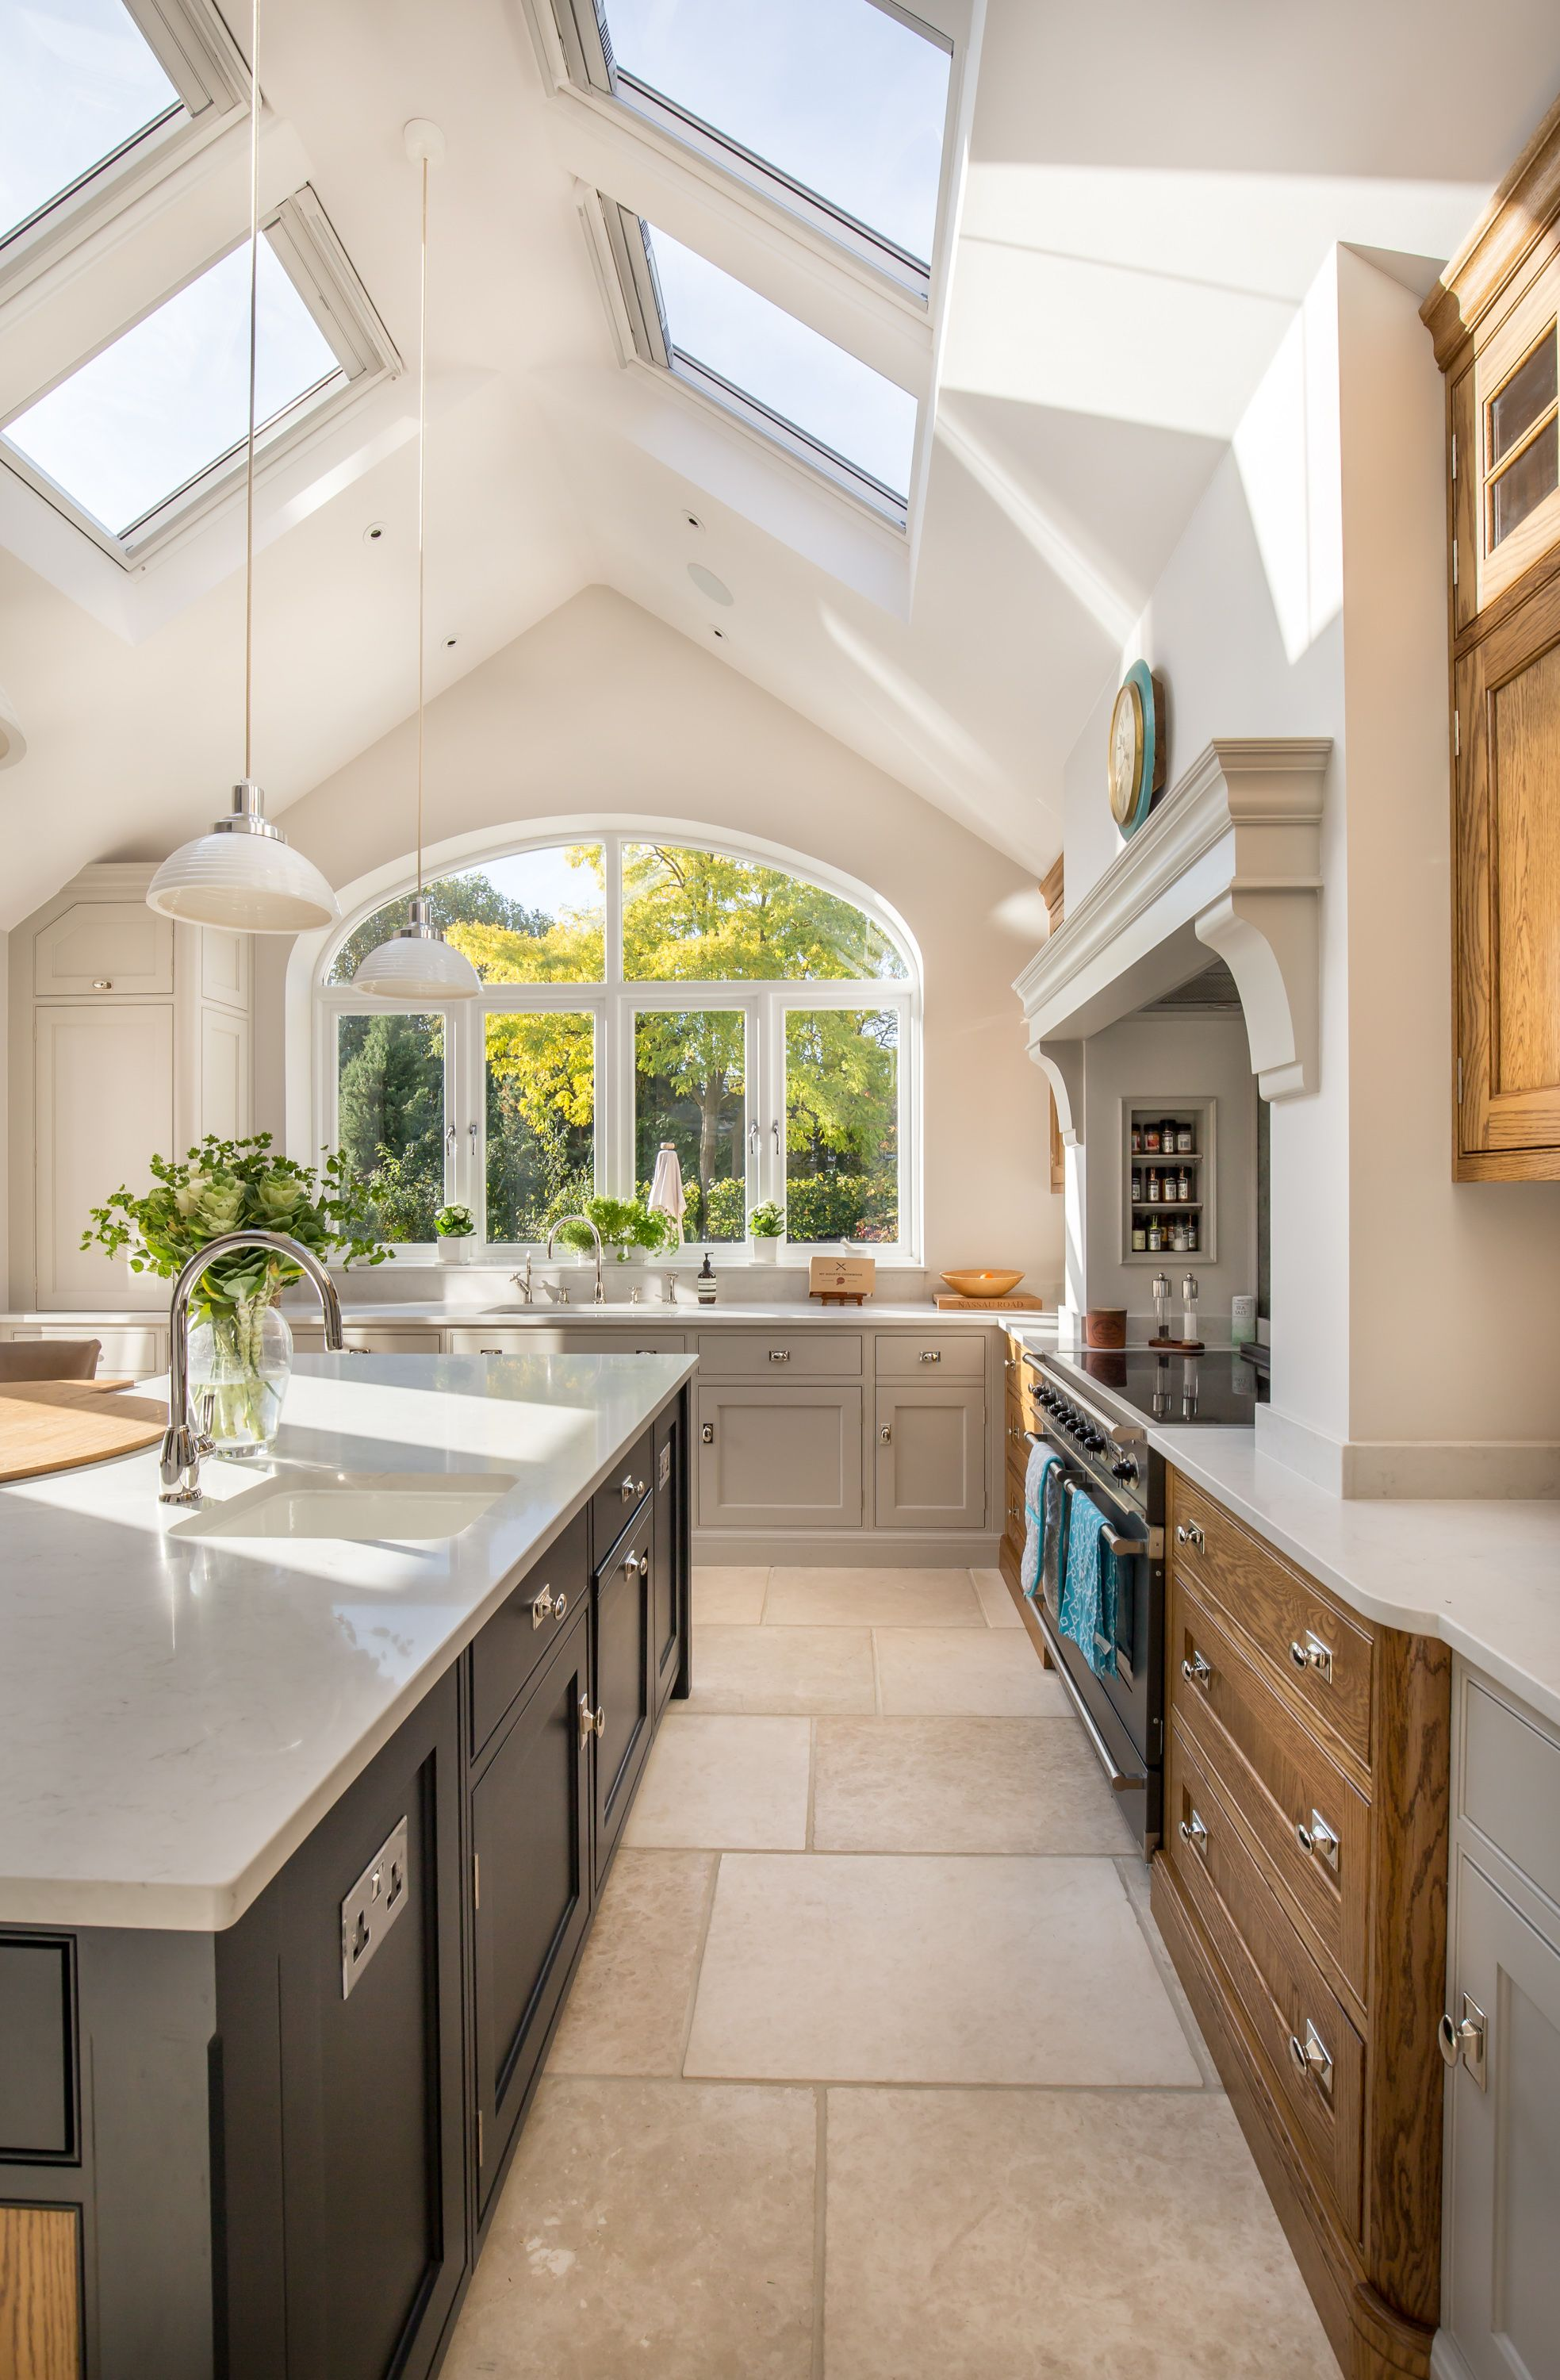 Kitchen Extension Project With Natural Light Flooding The Space Kitchen Island Breakfast Ba Skylight Kitchen Kitchen Extension Pitched Roof Kitchen Ceiling